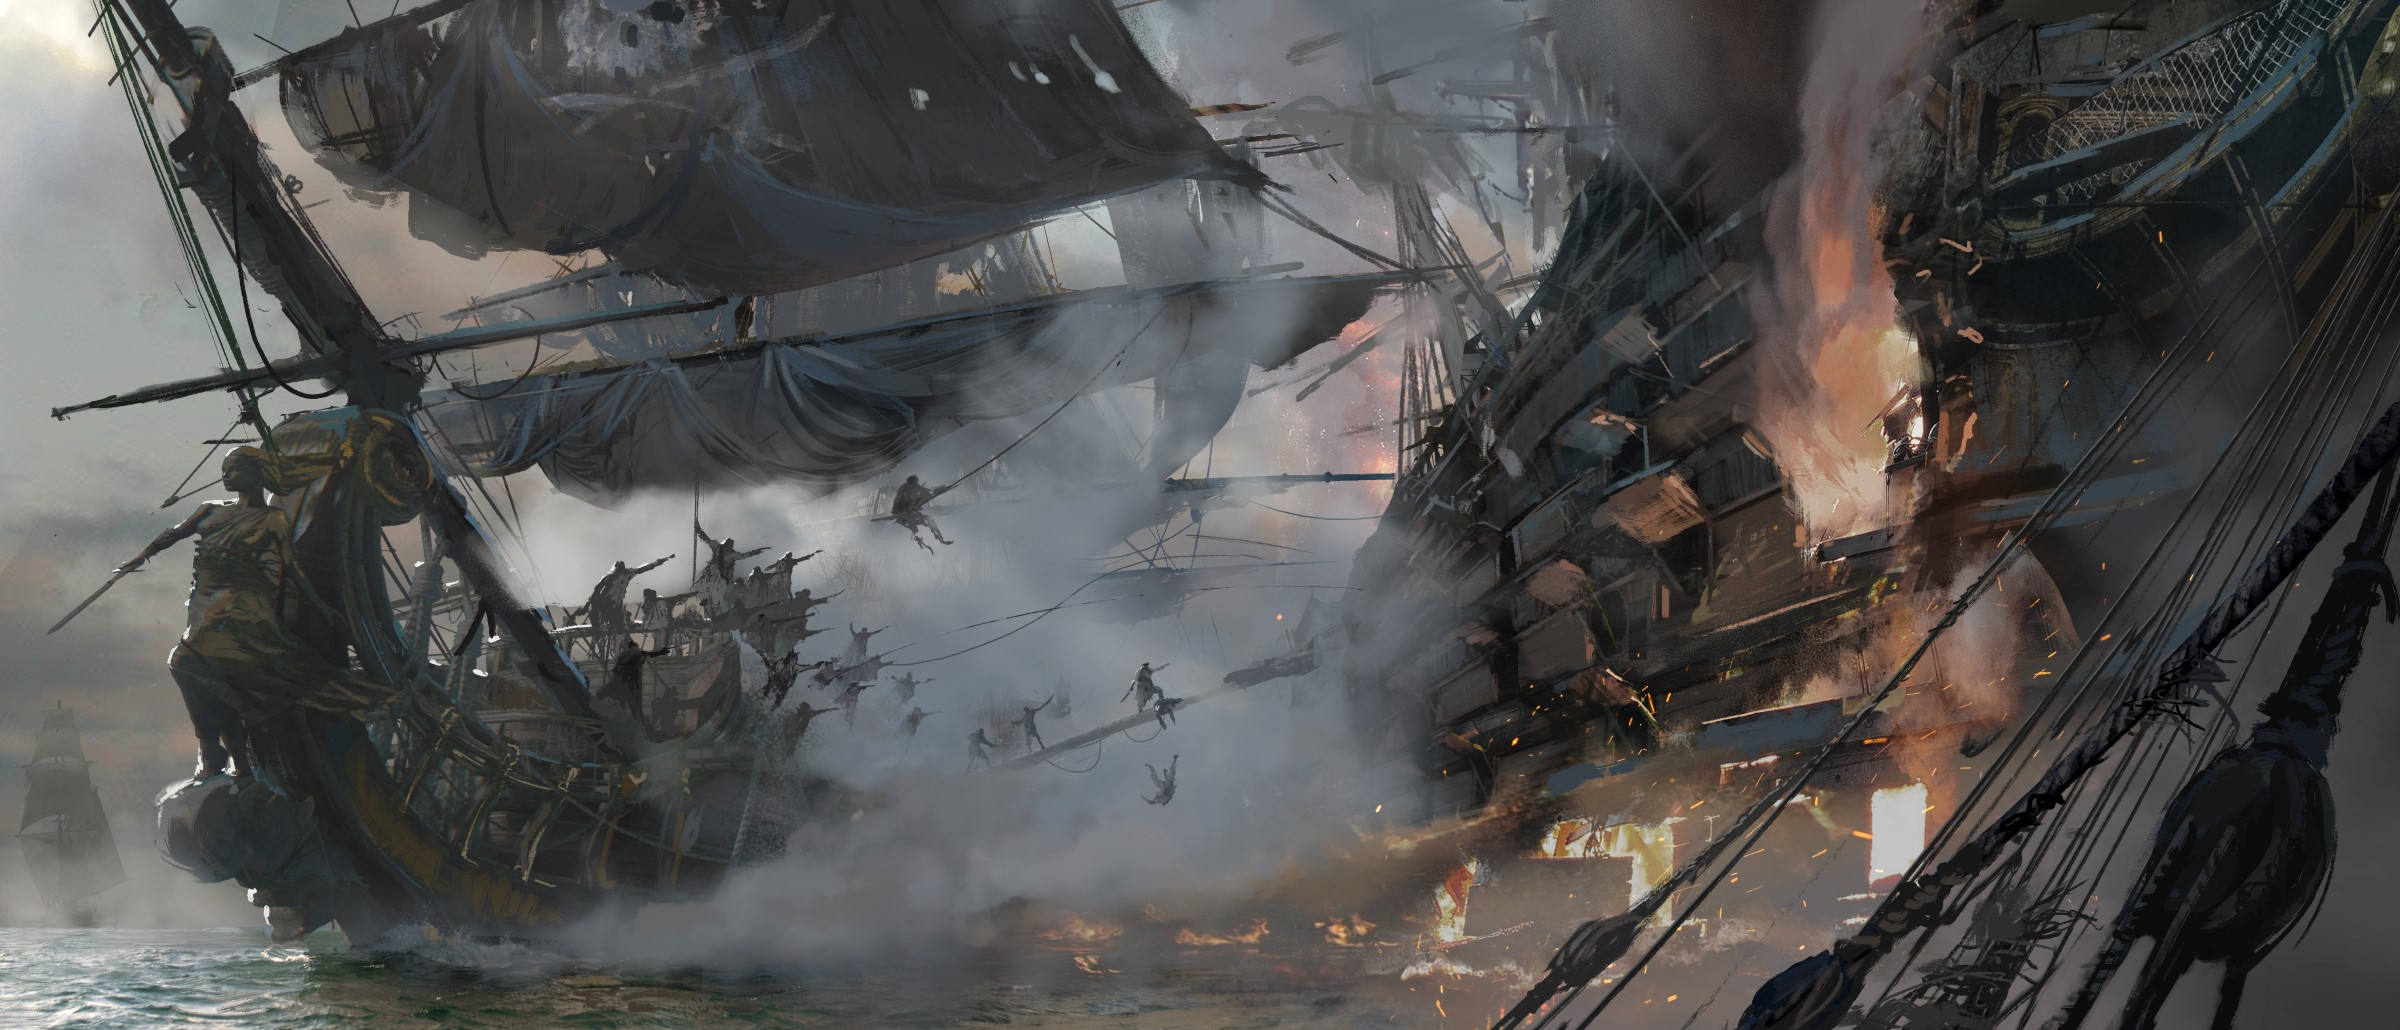 Skull and Bones Artwork (1)